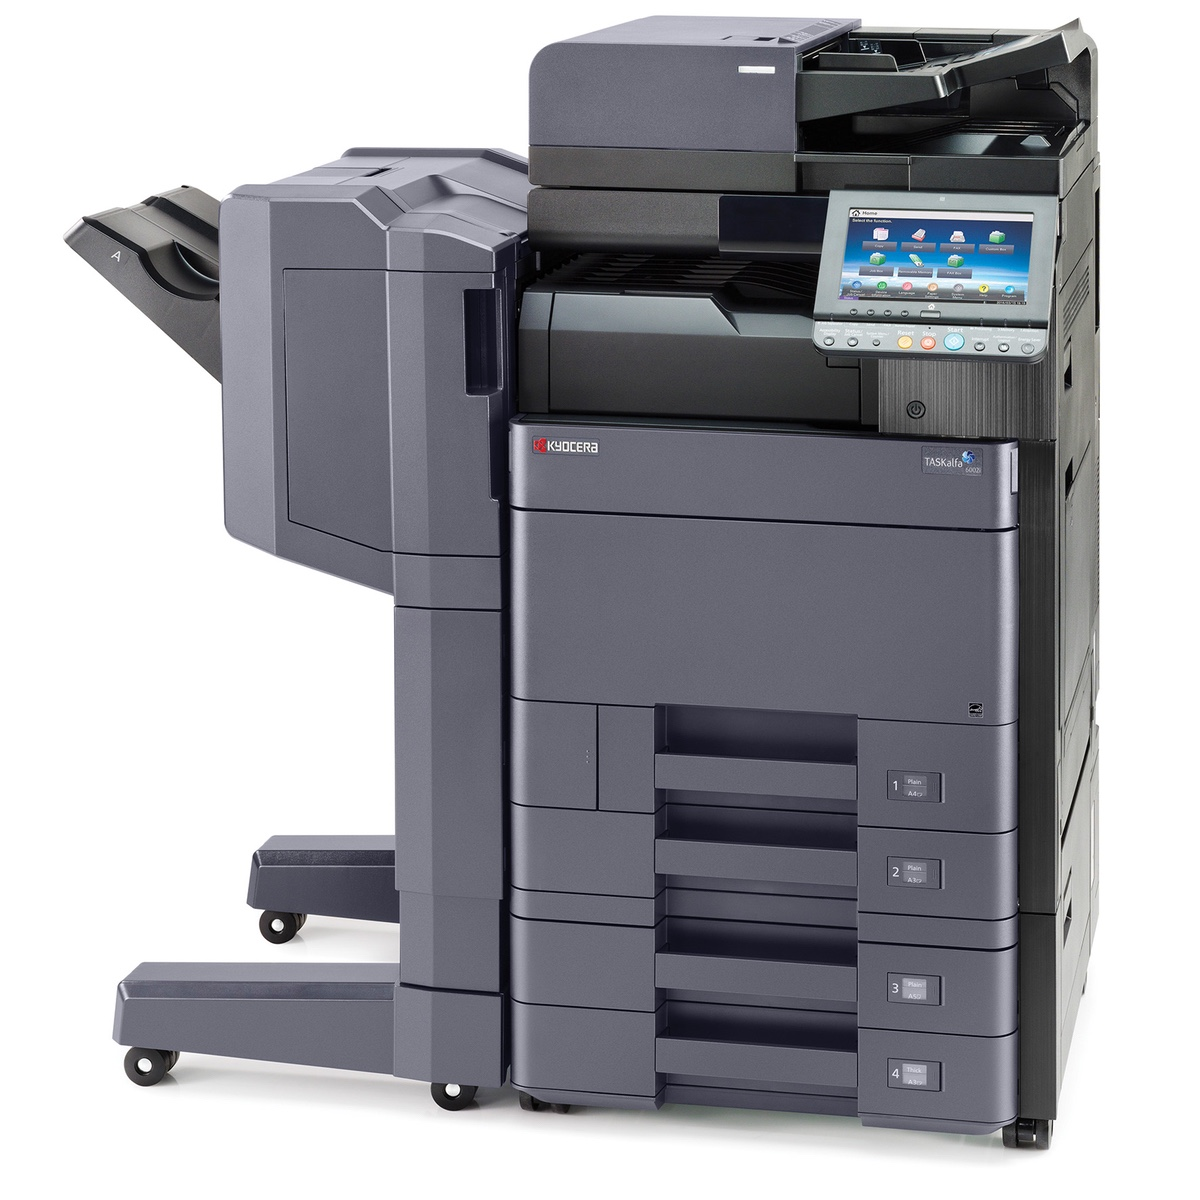 Kyocera Copiers:  The Kyocera TASKalfa 6002i Copier